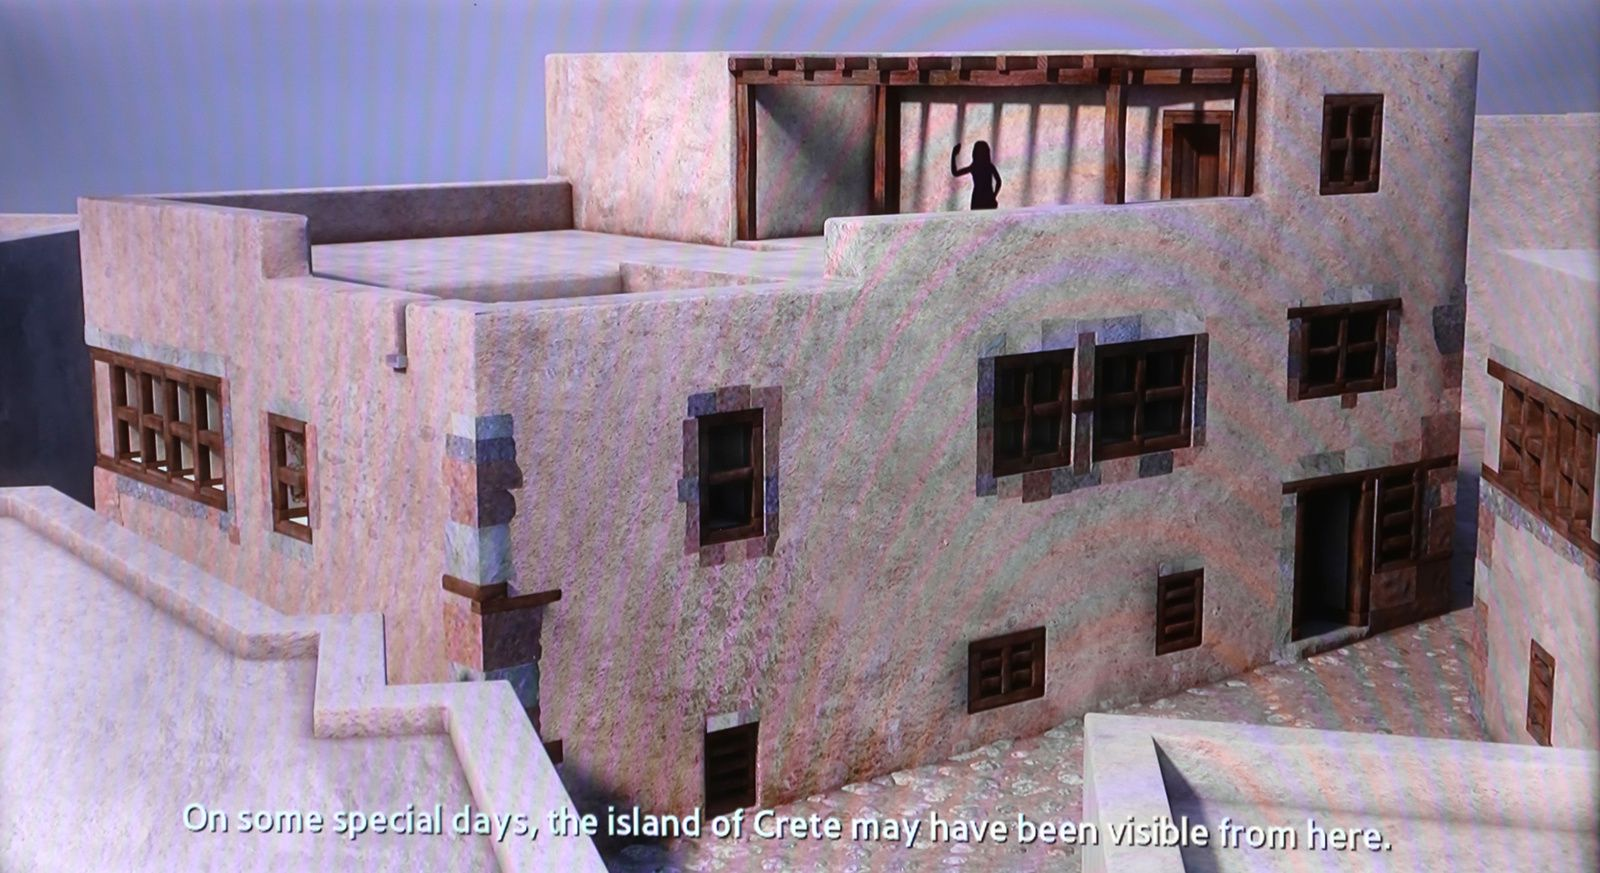 Santorini - archaeological site of Akrotiri - digital reconstruction of a two-storey house and a decorated interior, with doors and cupboards, and paved with volcanic stone slabs - photo © Bernard Duyck 09.2019 - one click to enlarge